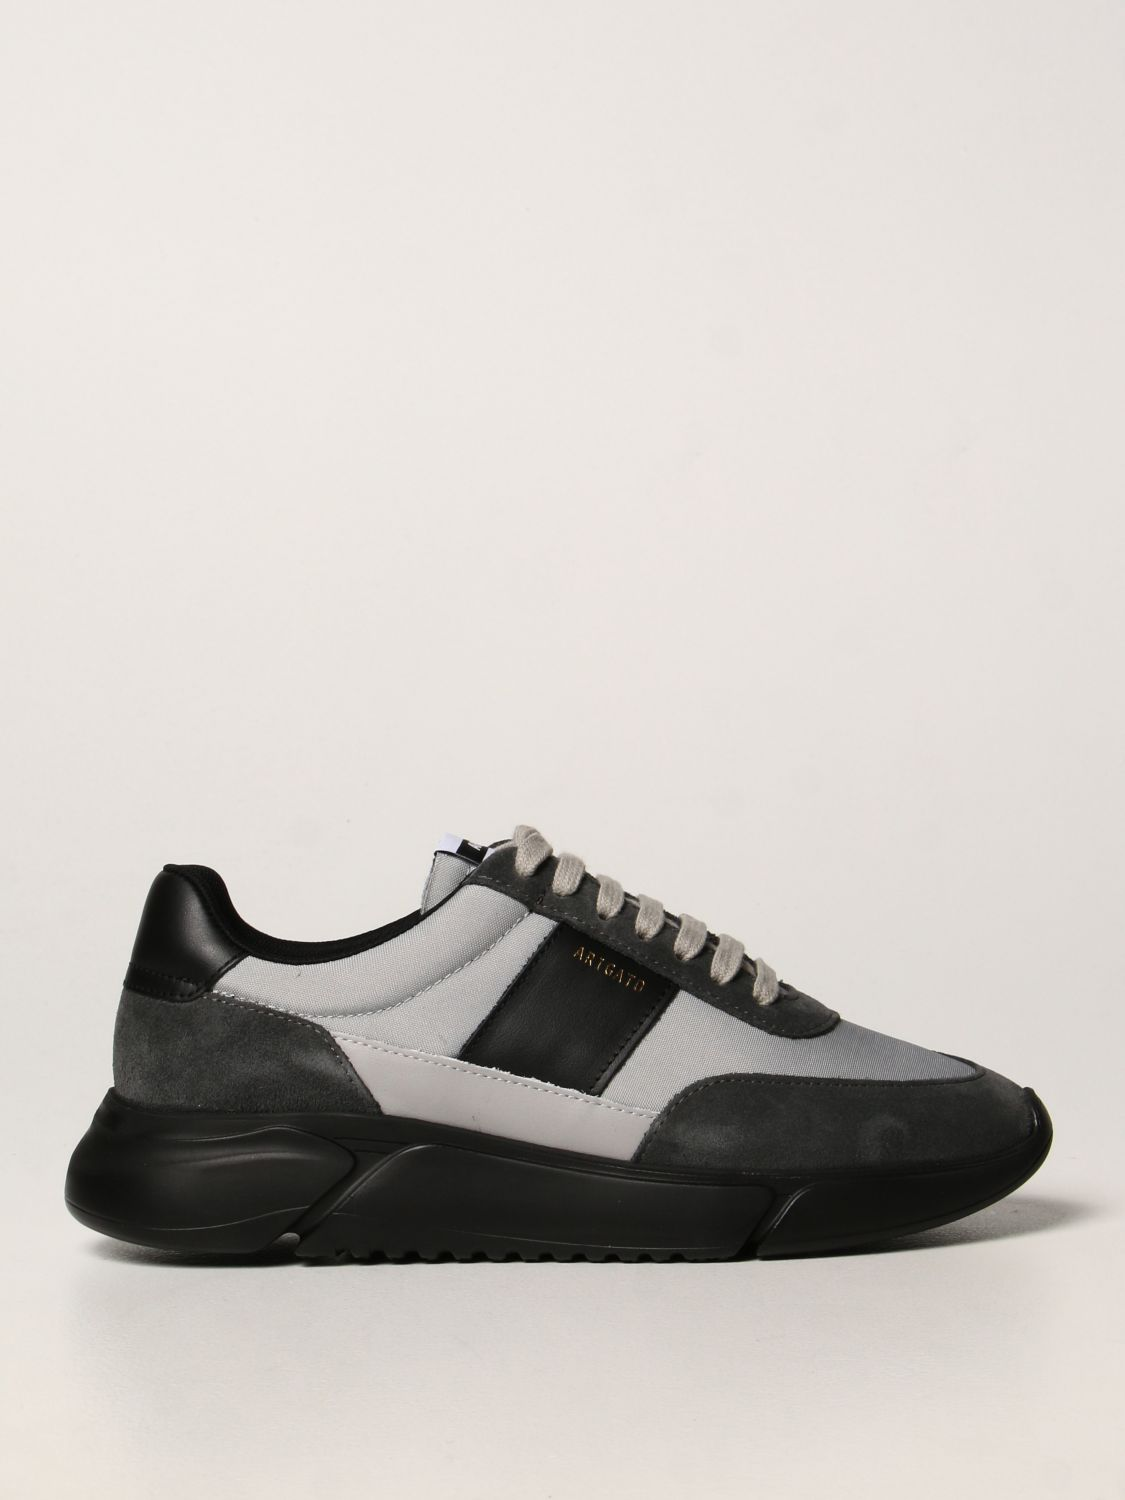 Sneakers Axel Arigato: Axel Arigato sneakers in leather, fabric and suede black 1